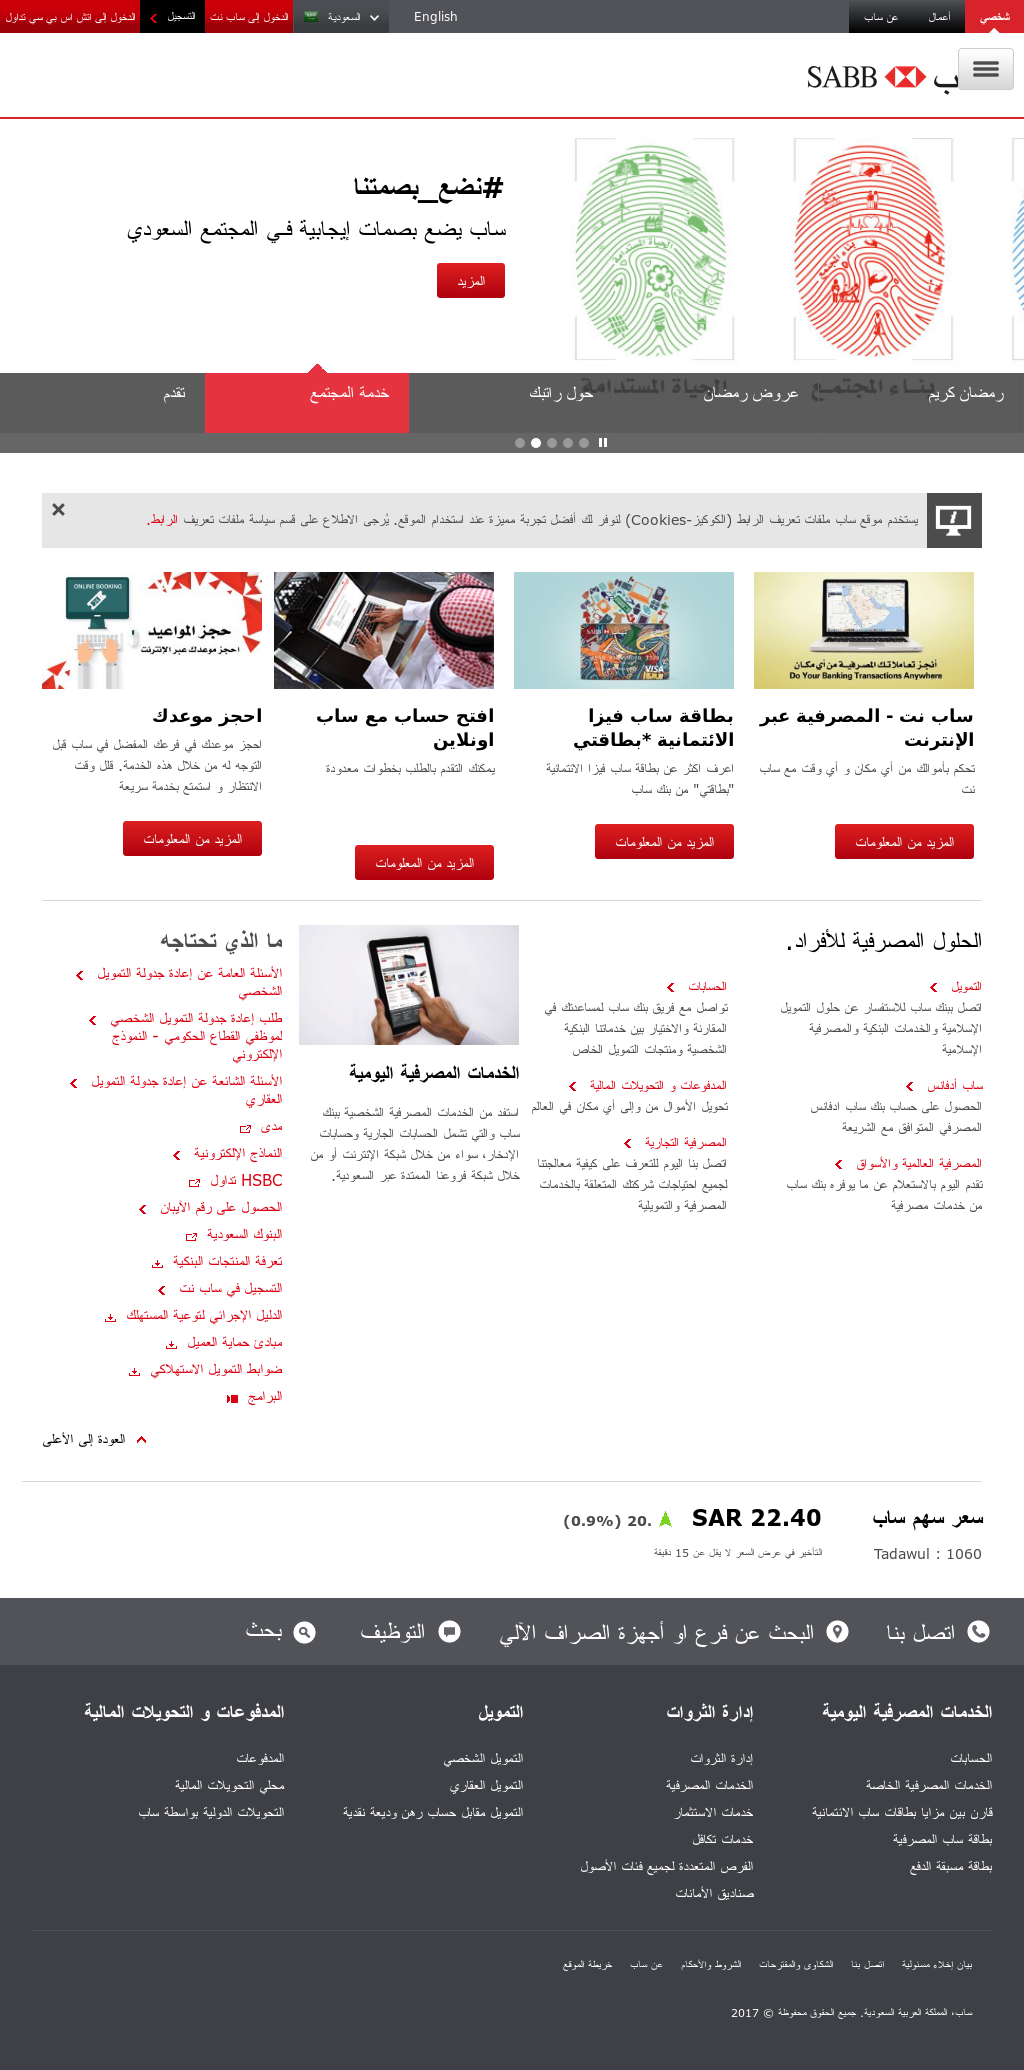 SABB Competitors, Revenue and Employees - Owler Company Profile